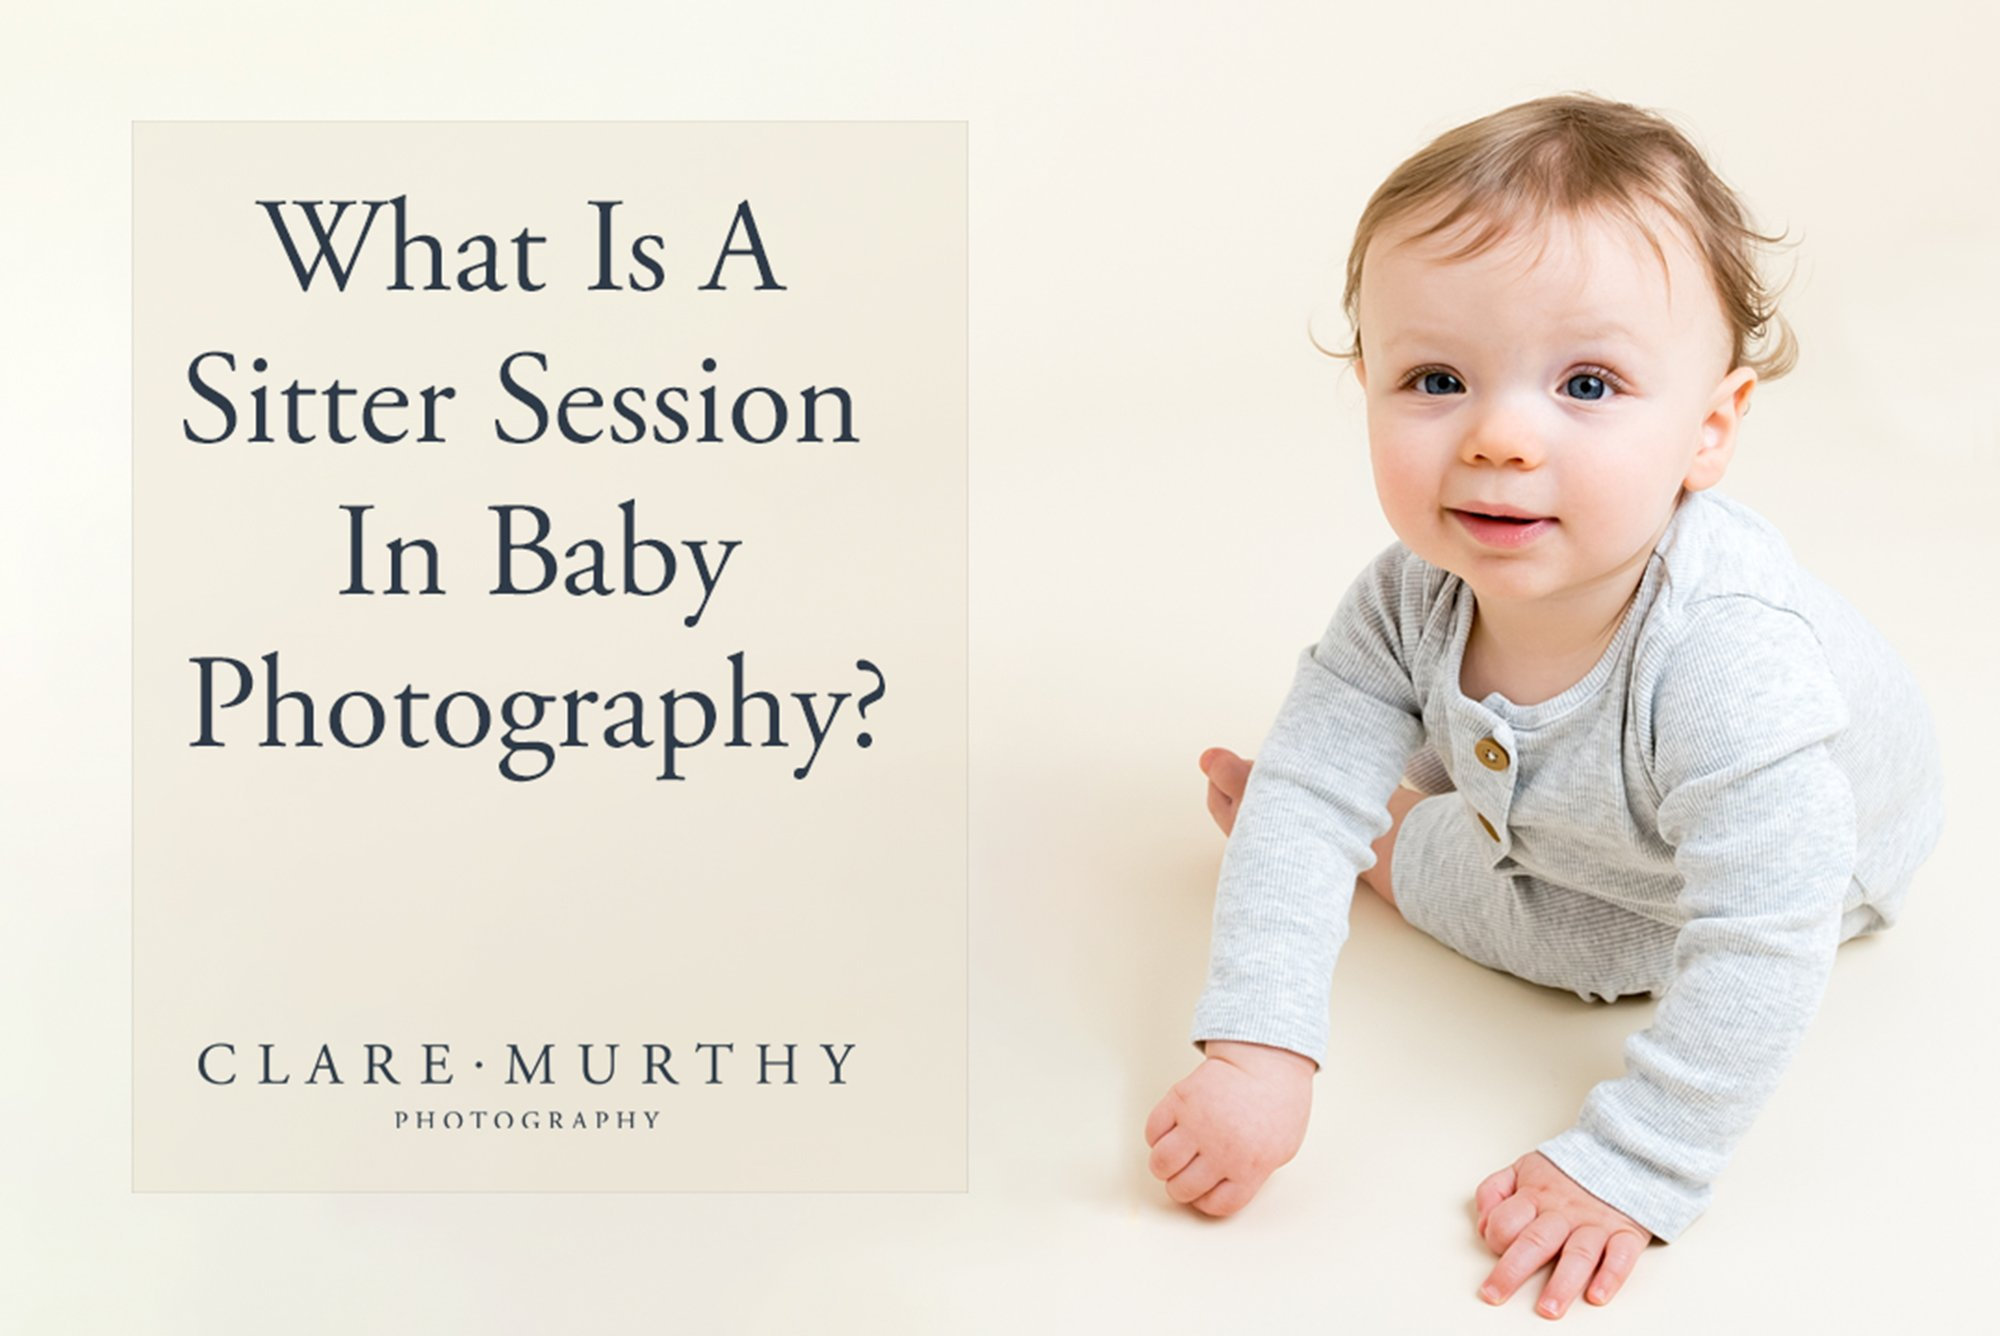 what is a sitter session in baby photography